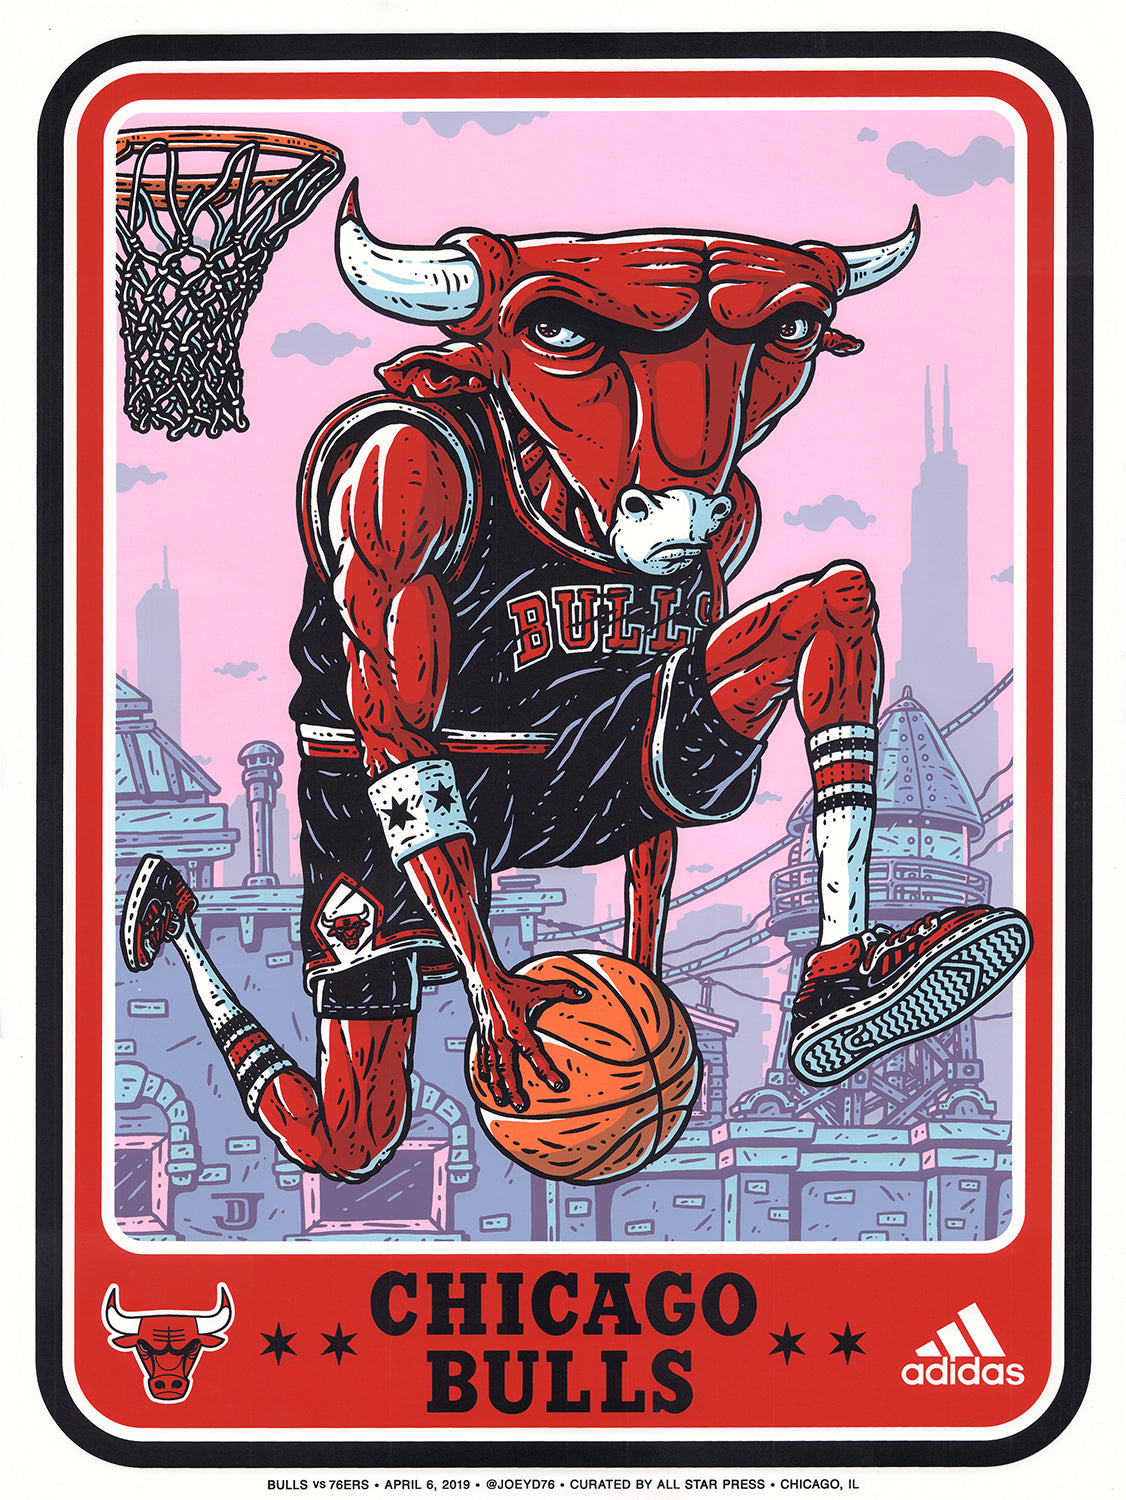 Official 76ERS VS Bulls Print by Joey D. Regular